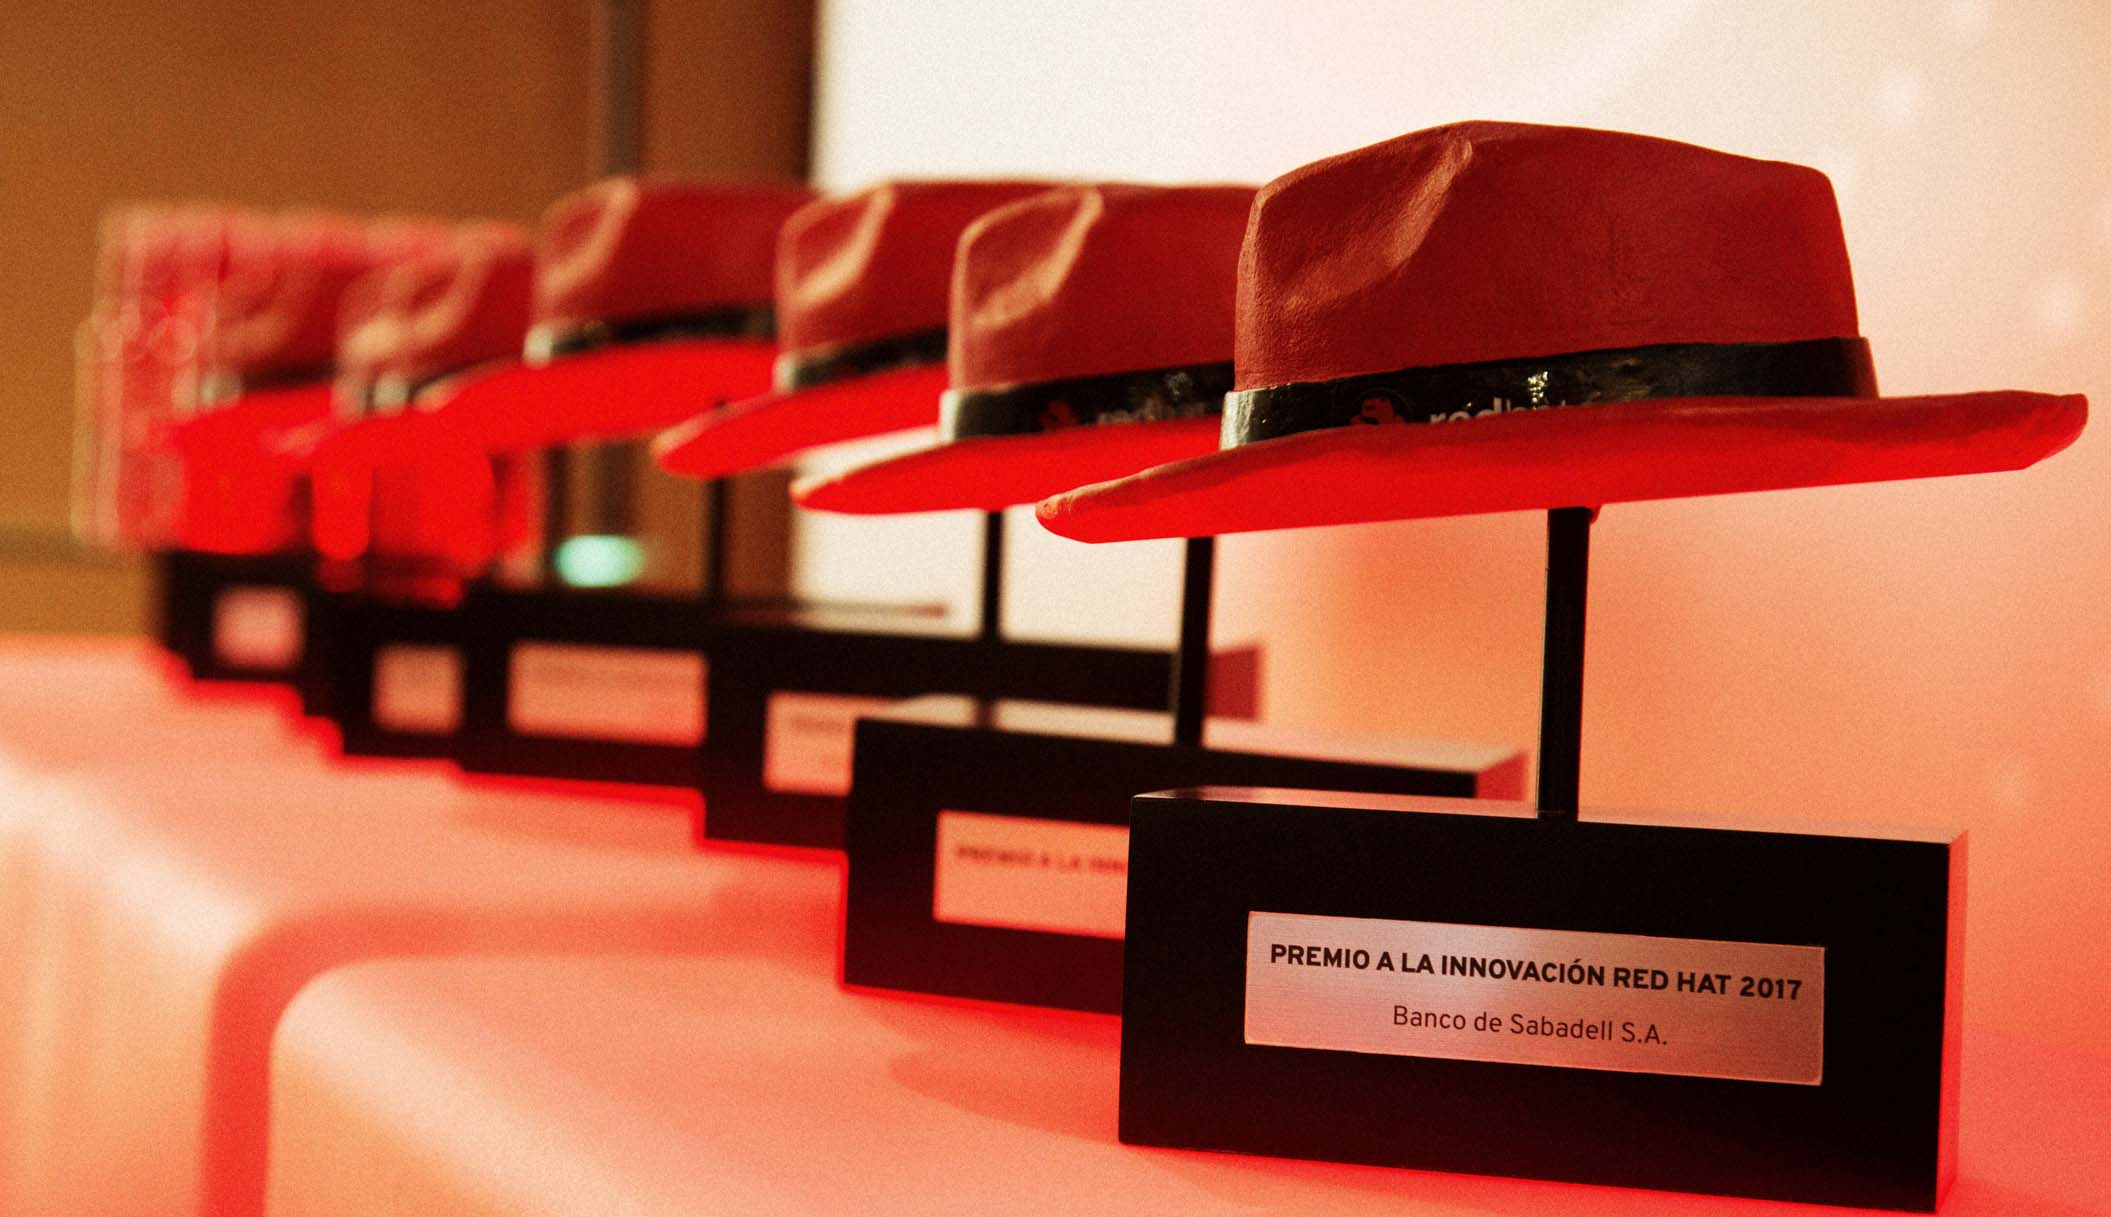 Premios Red Hat